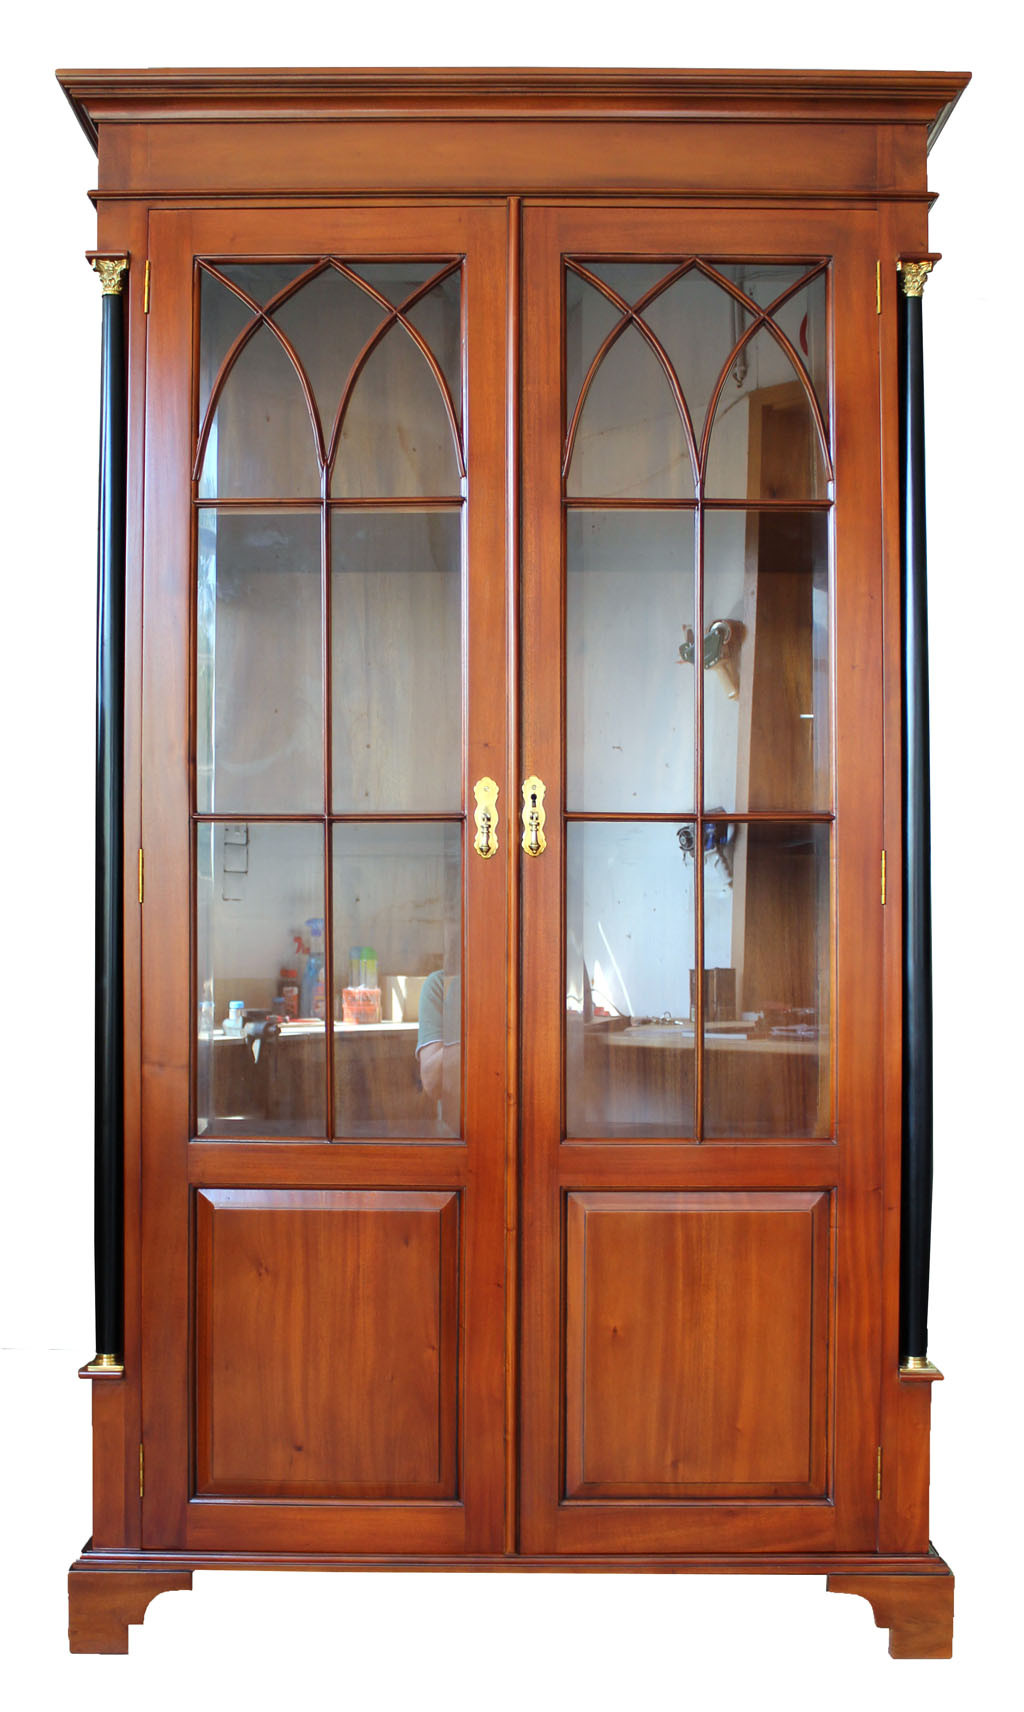 biedermeier vitrine antik massiv in stil kirsche. Black Bedroom Furniture Sets. Home Design Ideas